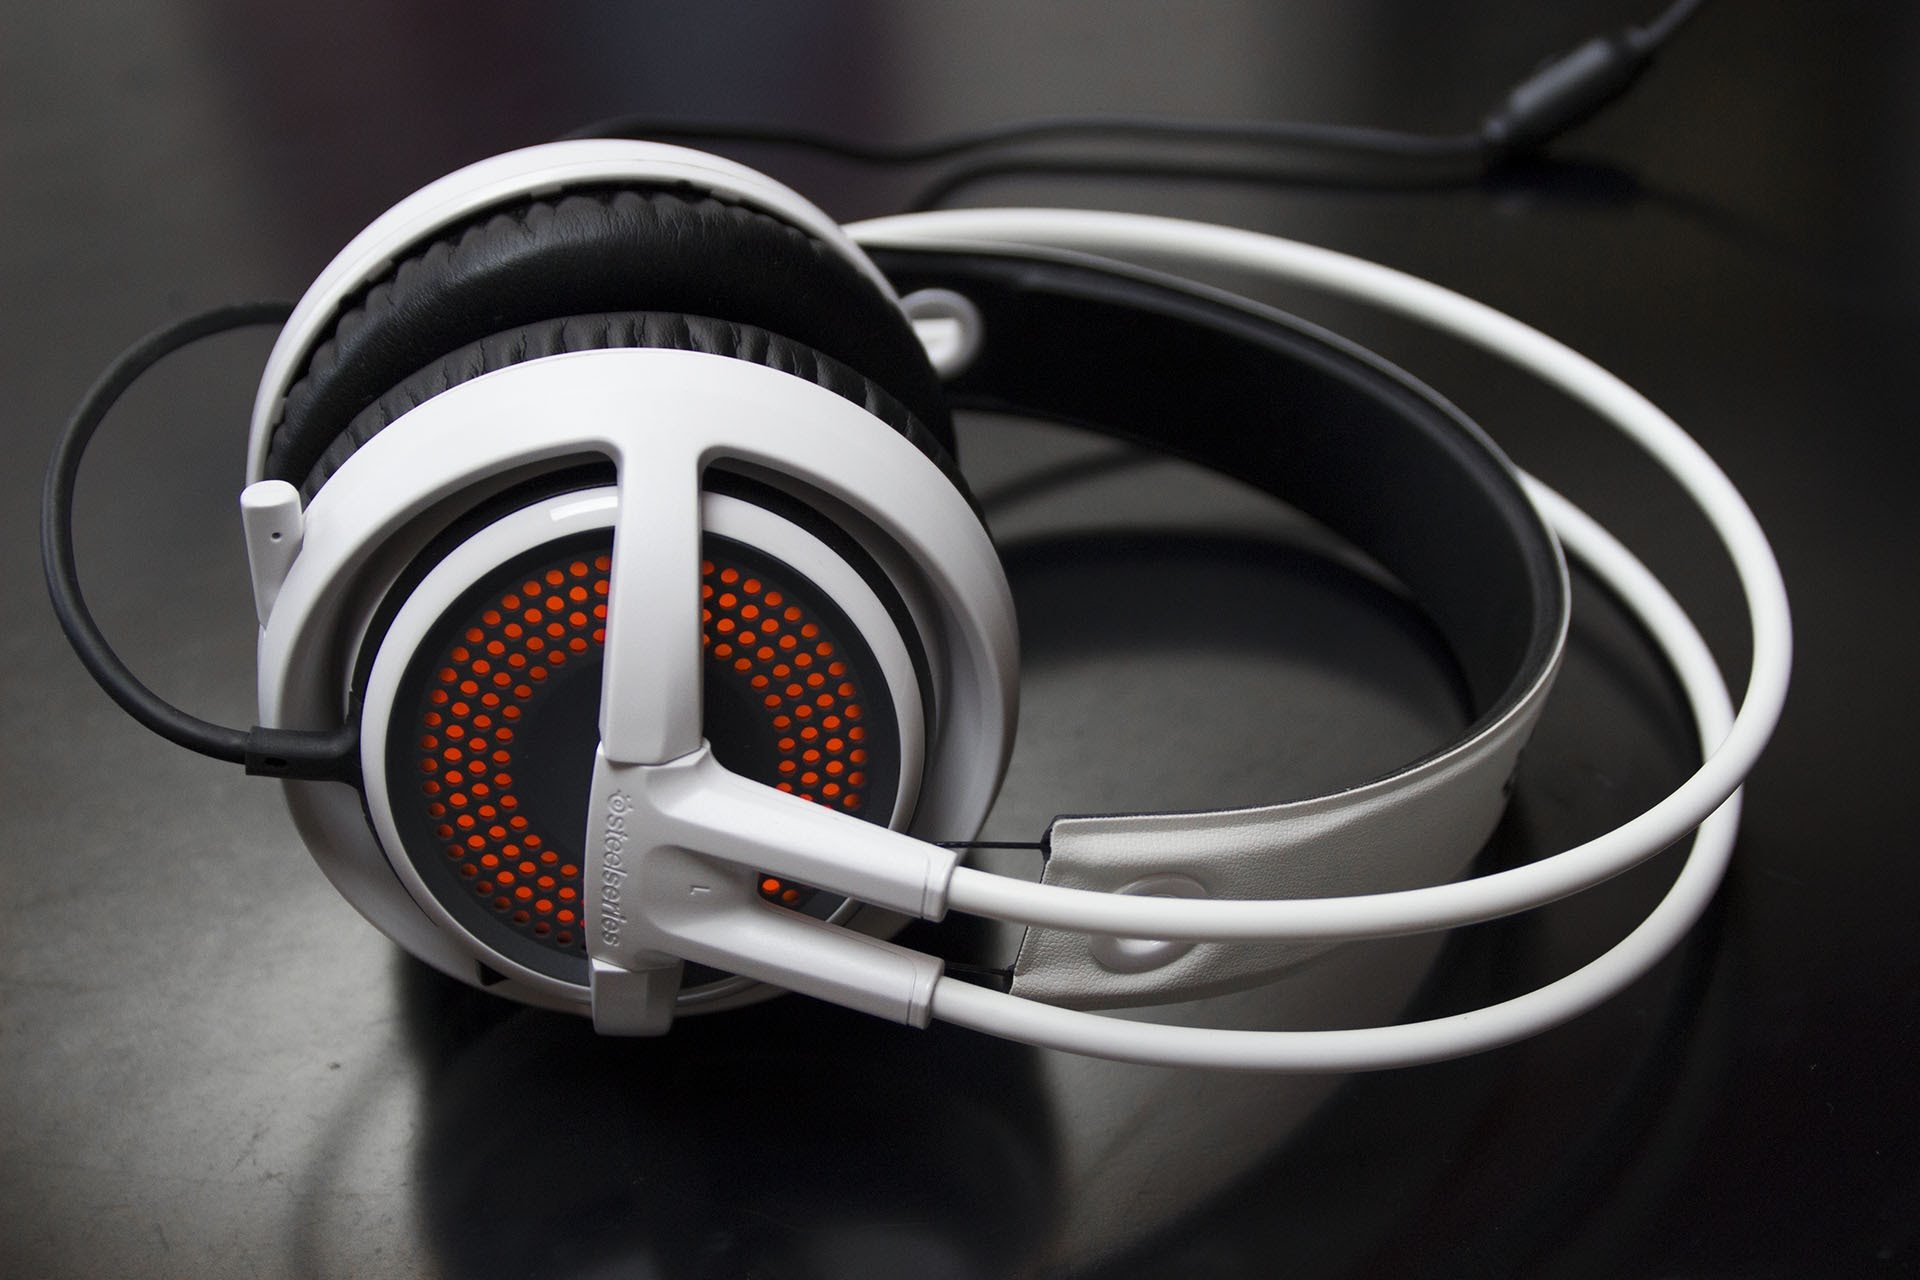 Steel Series Siberia 350 Headset Review | GamesReviews.com